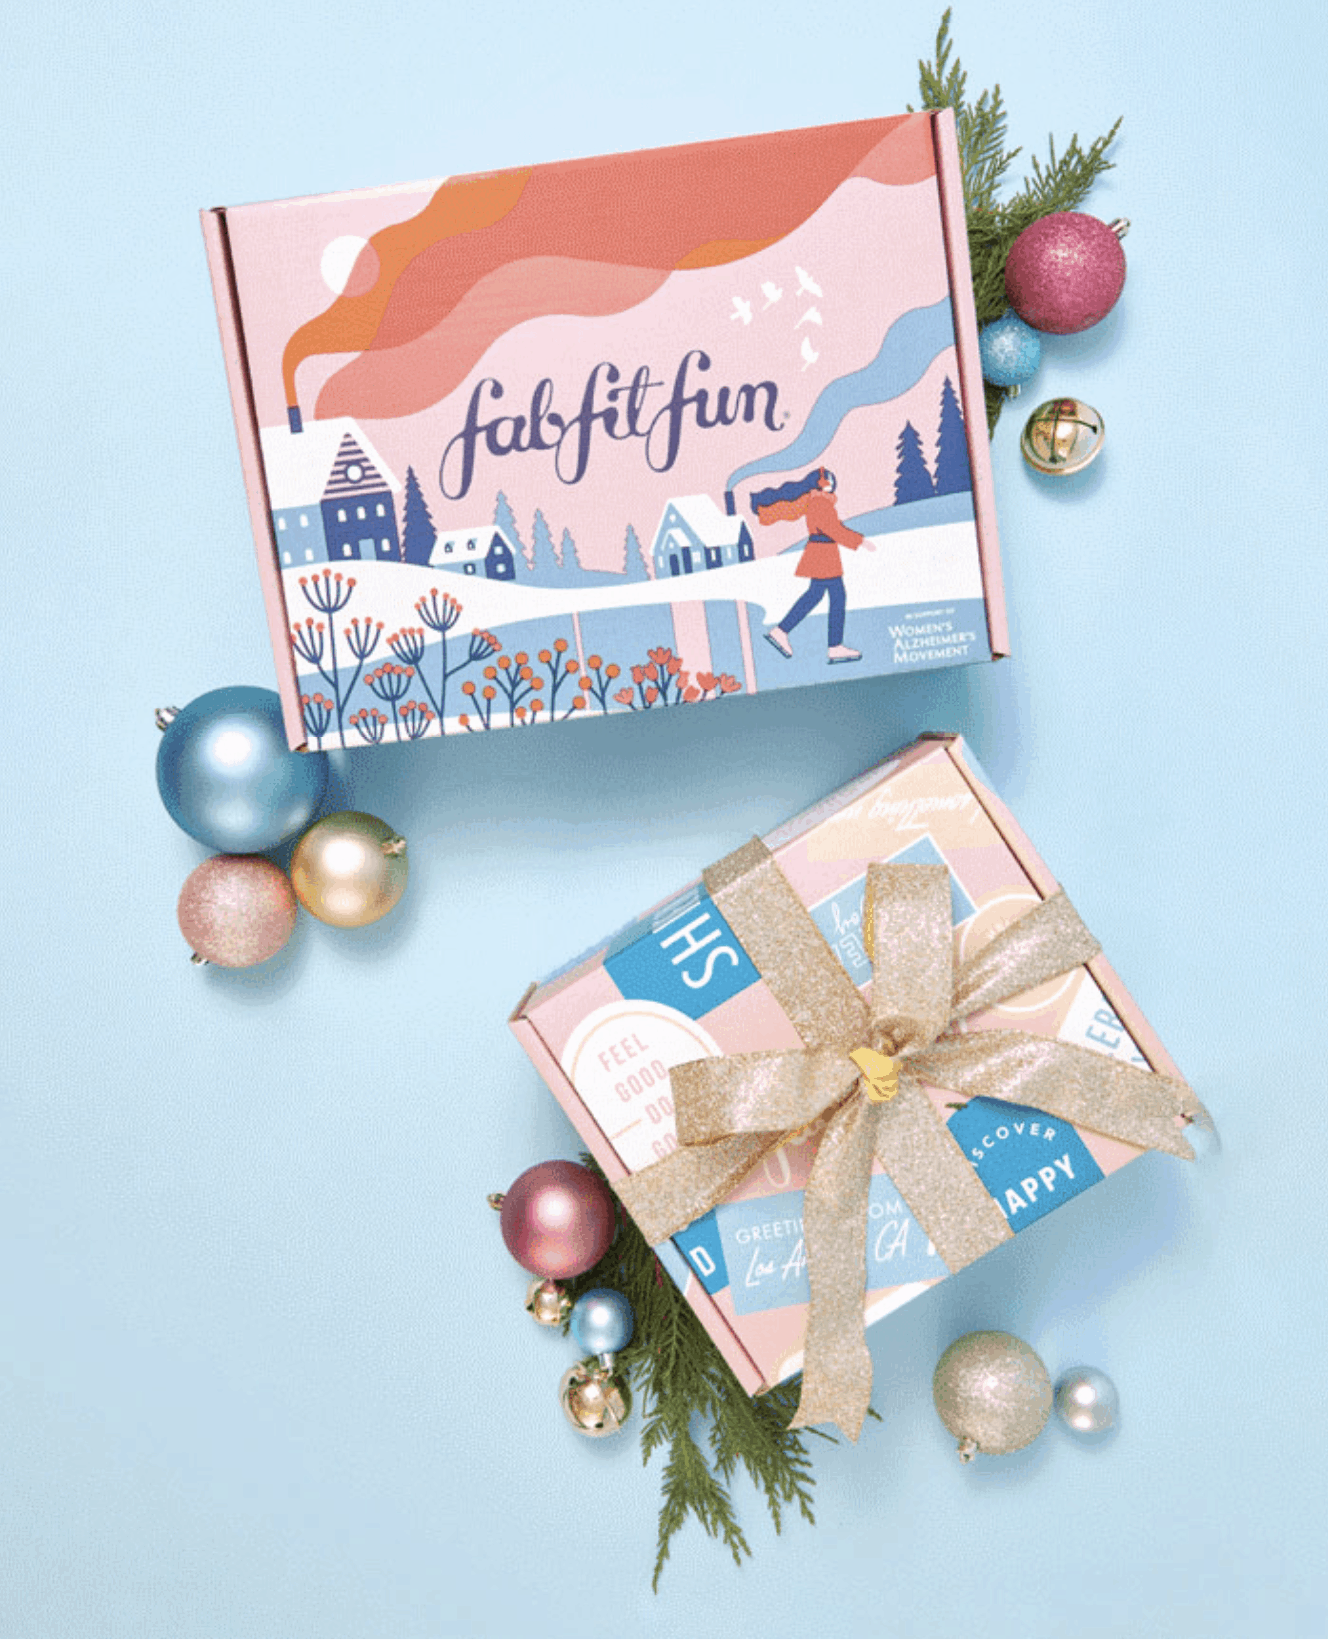 FabFitFun Cyber Monday Deal Still Working: FREE $150 Value Mini Box with Subscription!